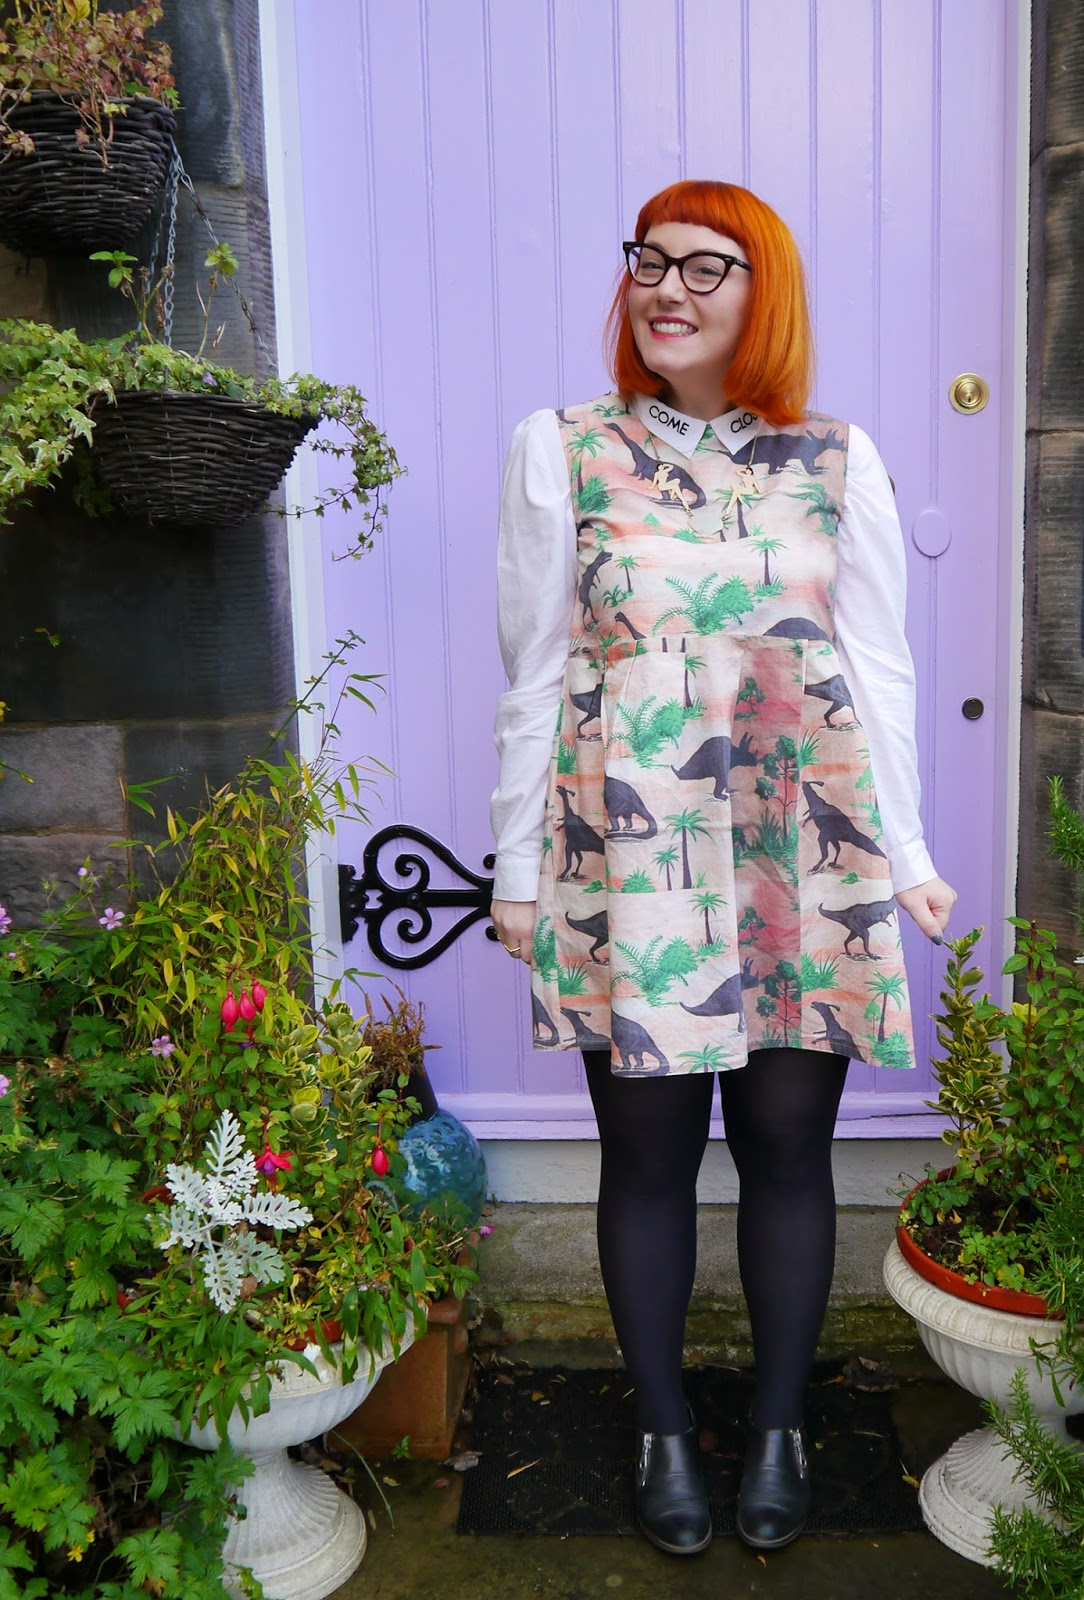 Scottish Blogger, Christmas Shopping, Edinburgh Blogger, Edinburgh, Scotland Re:Designed, Limited Edition Pop Up, Dinosaur Dress, Monki Come Close Shirt, Vintage Style Me Dinosaur Dress, Karen Mabon necklace, Clarks boots, outfit, what I wore